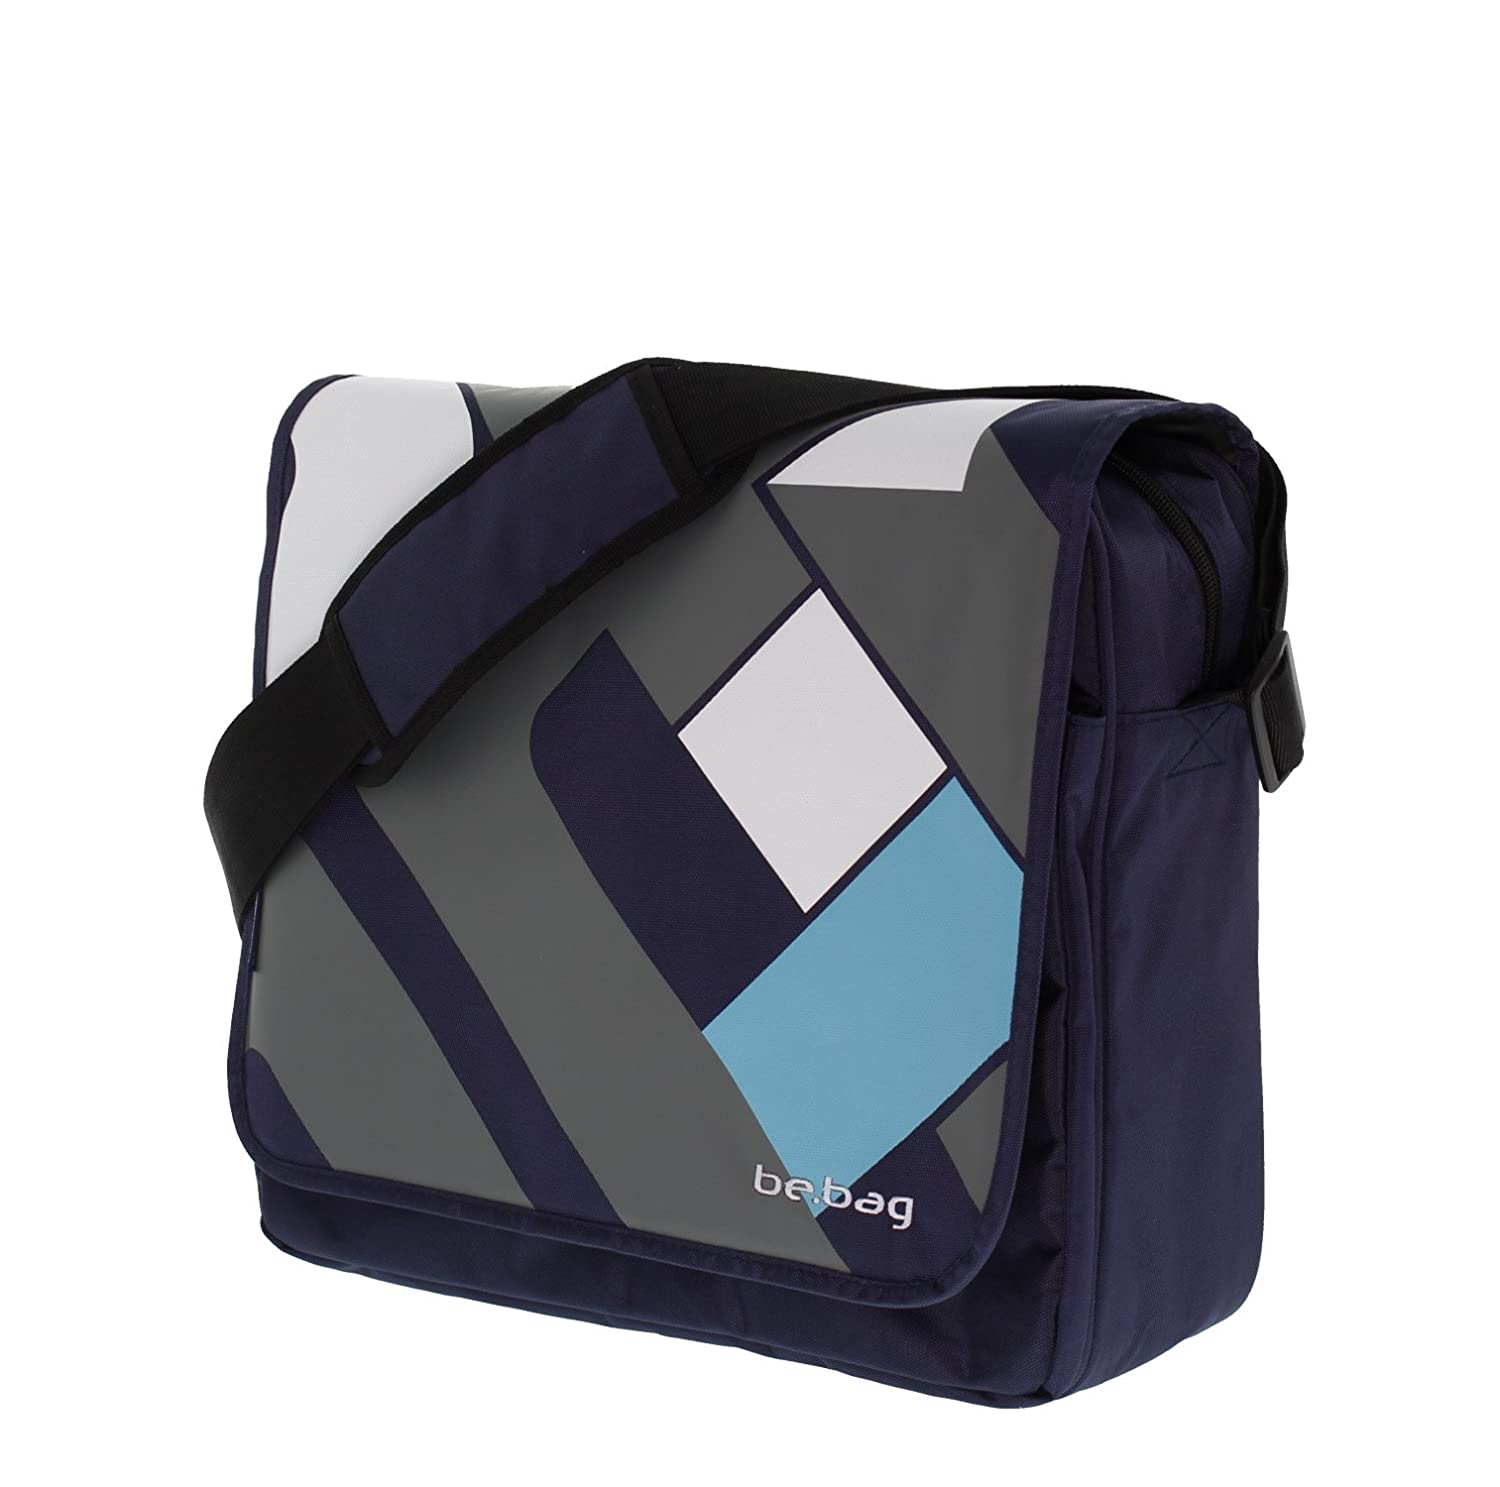 Herlitz 11437662 Messenger Bag be.bag, Crossing: